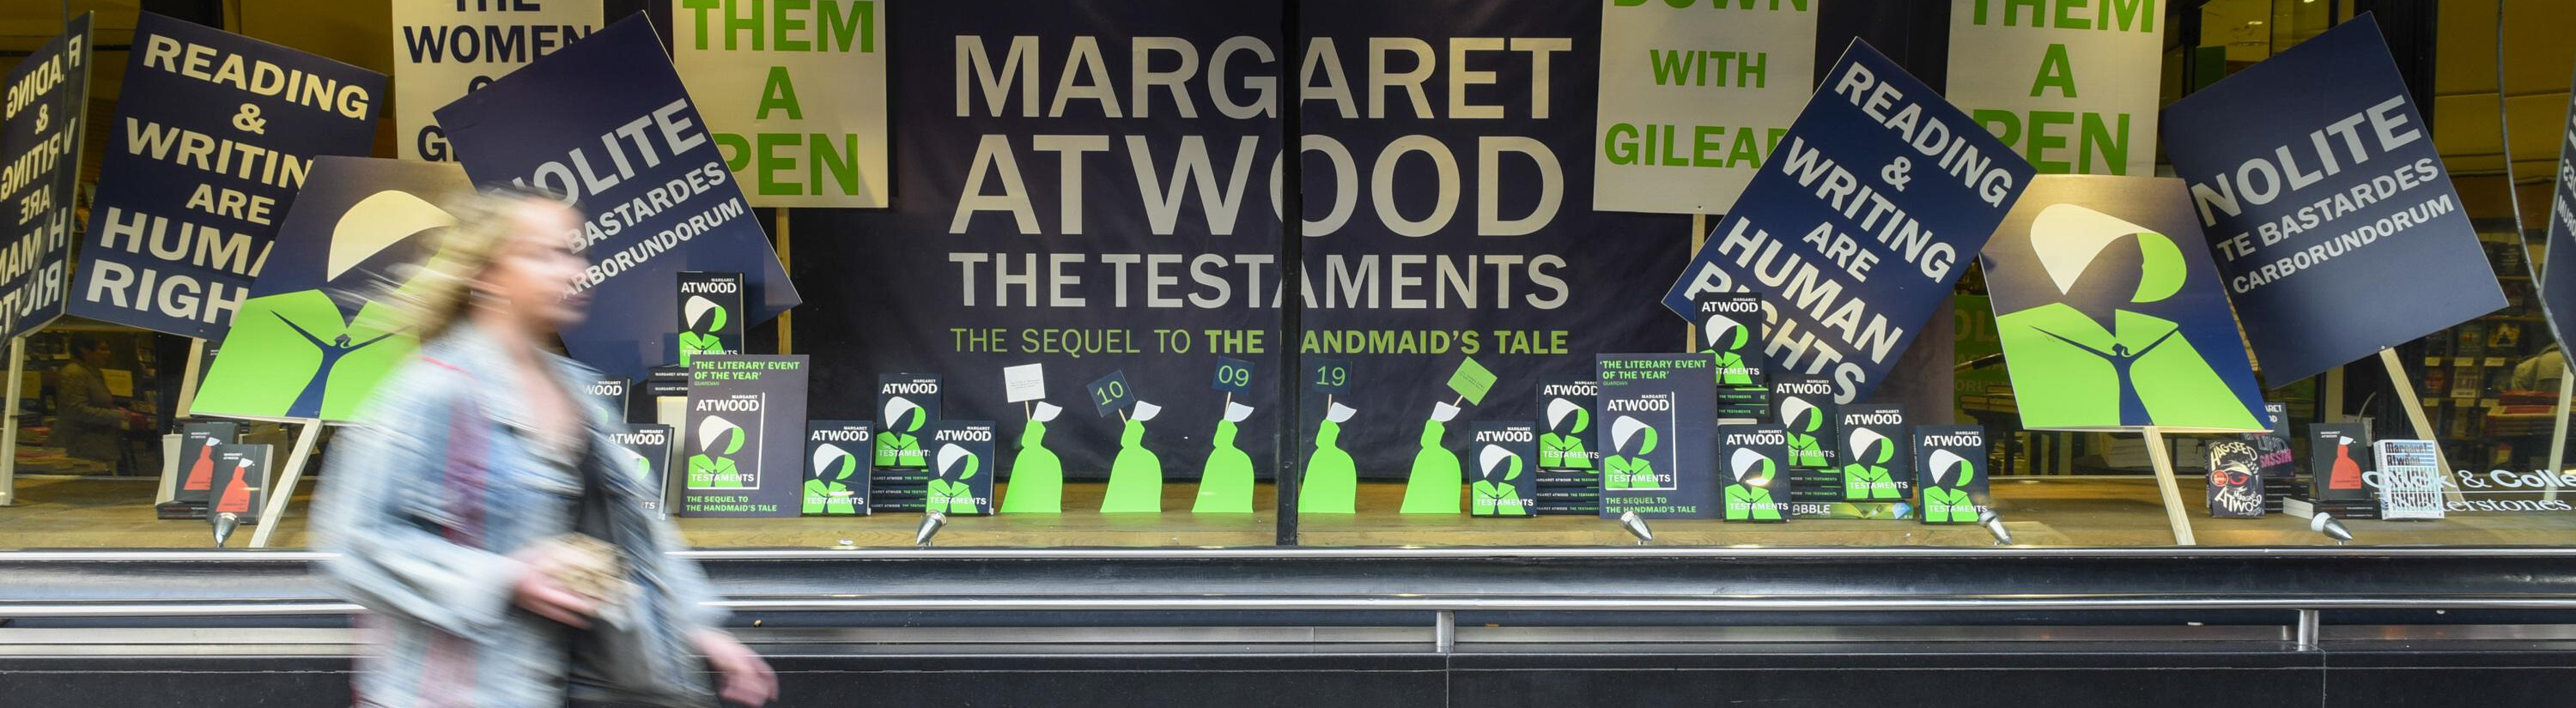 September 10, 2019, London, UK: LONDON, UK. Copies of The Testaments , the new book by author Margaret Atwood, are displayed at bookshop in Piccadilly.